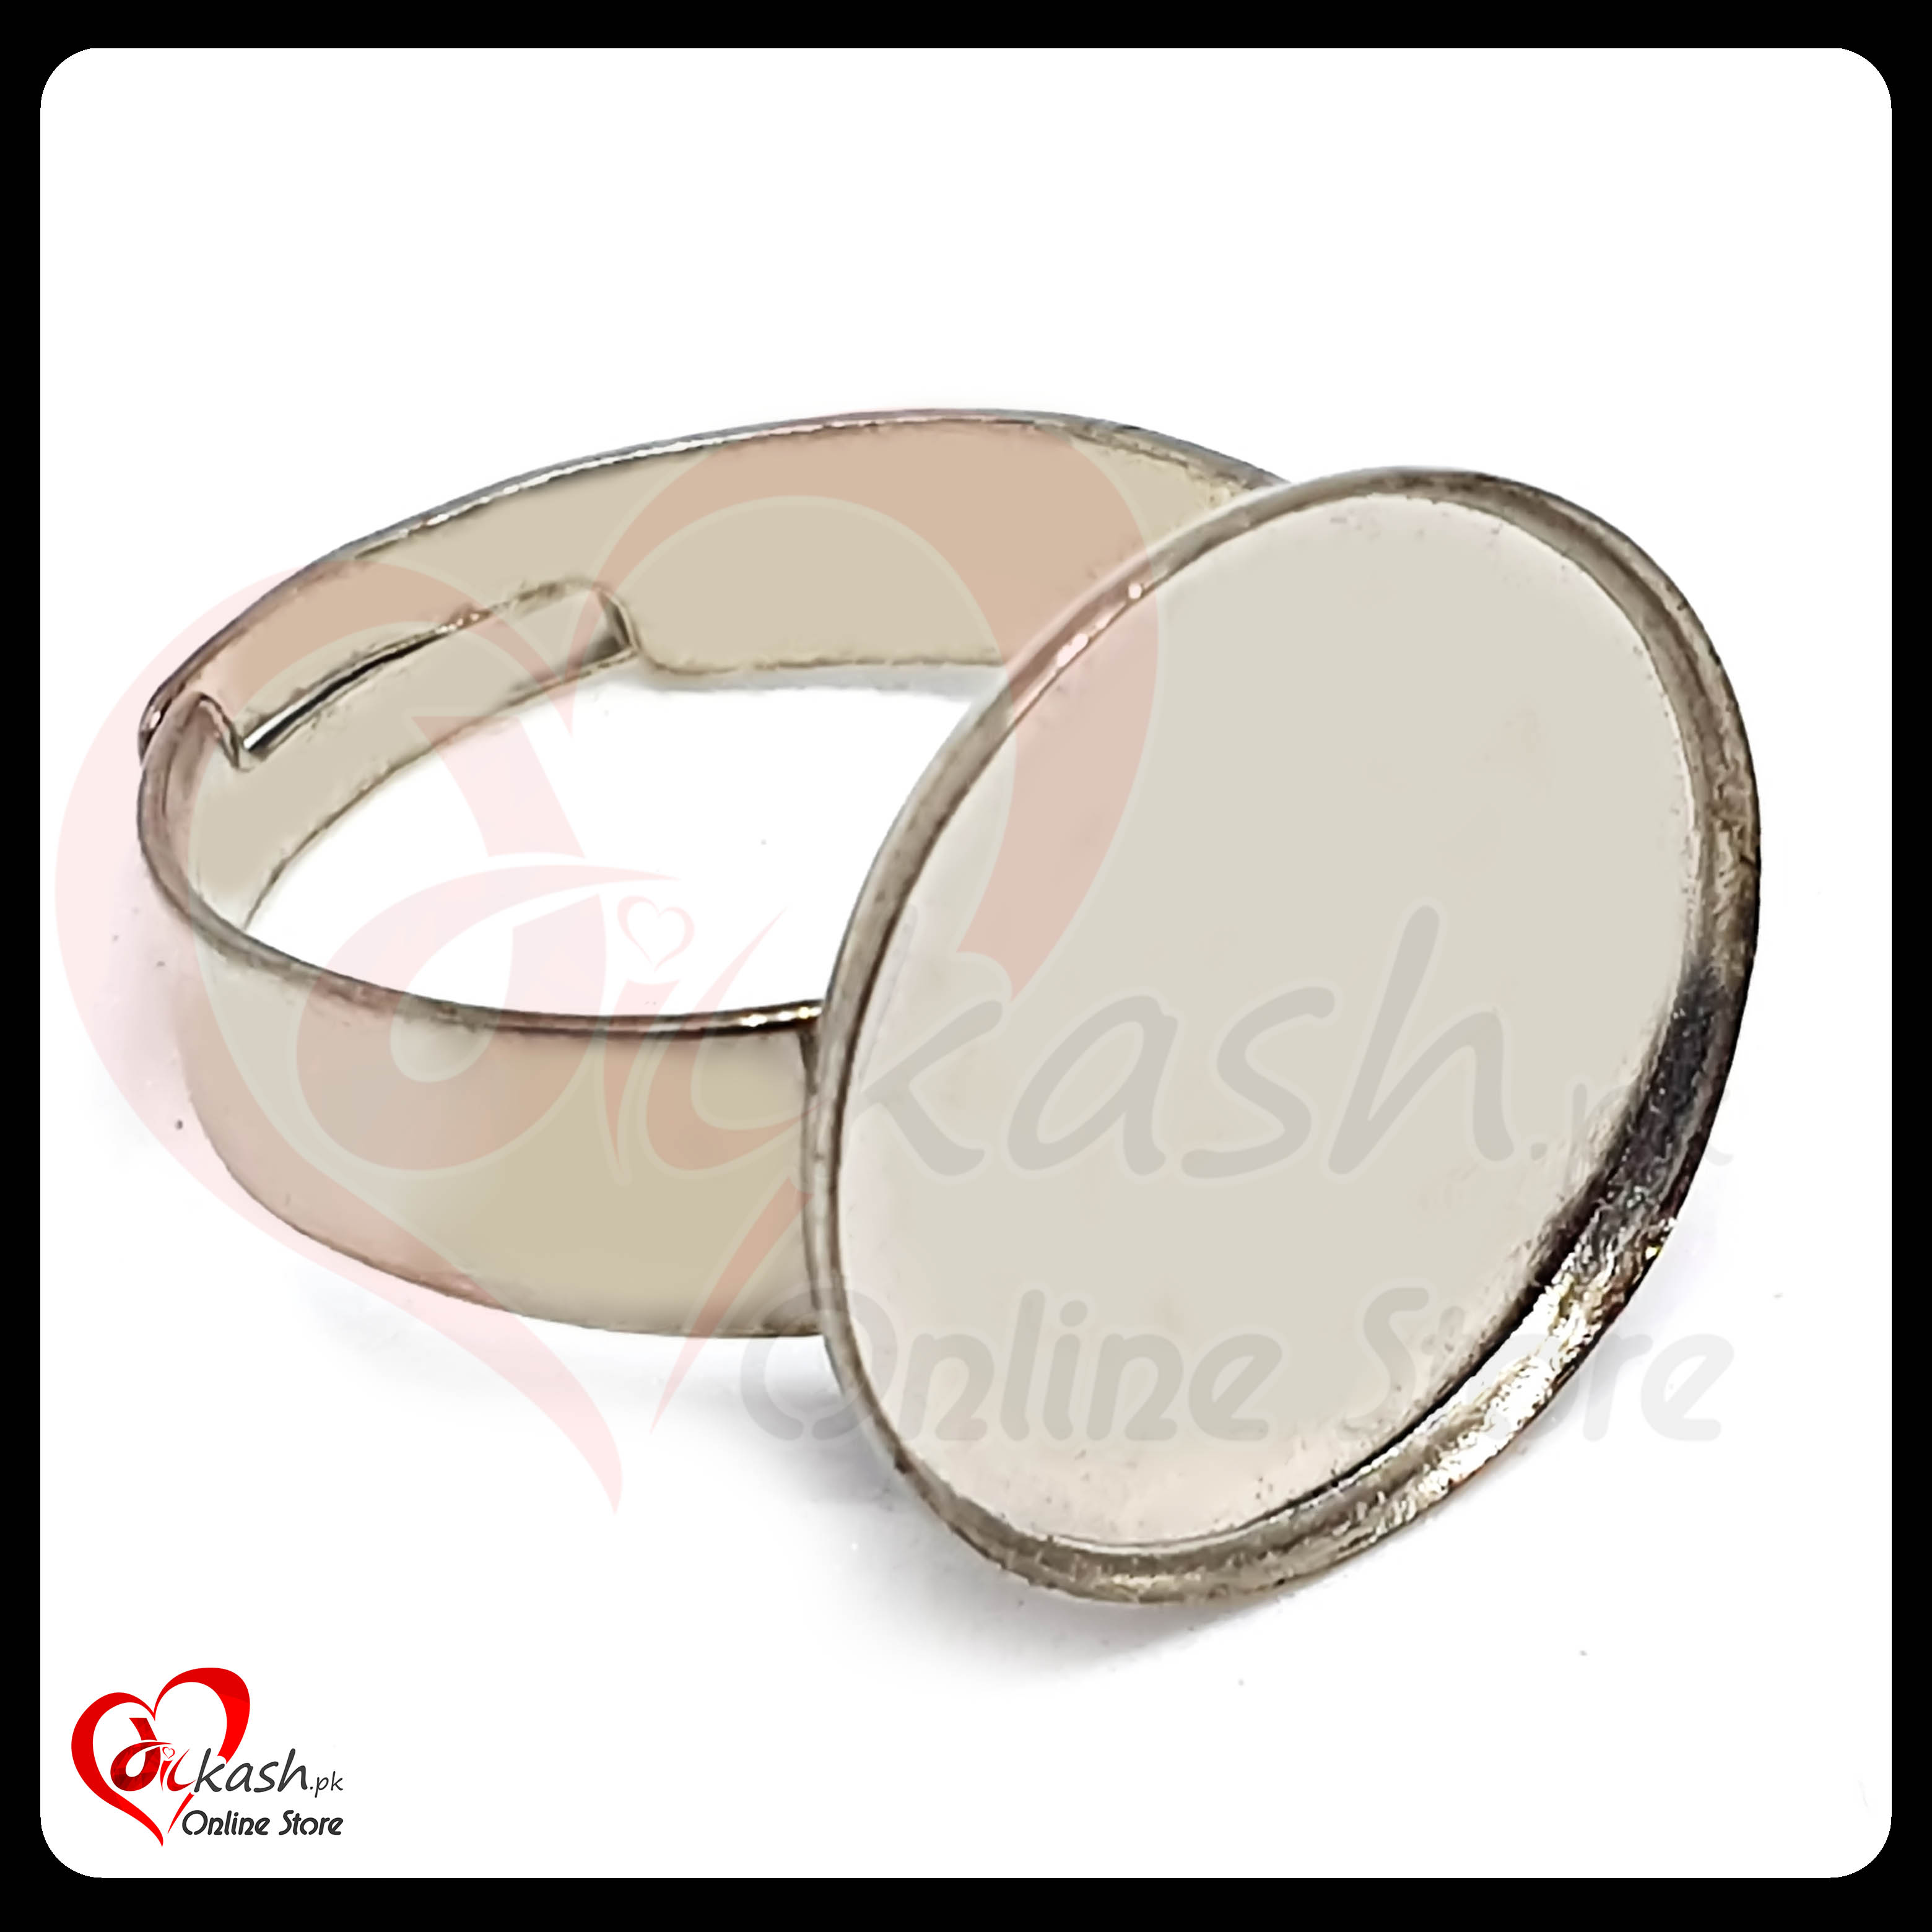 Jewelry Rings Base - Half Inch Round Ring Base with Border - Silver